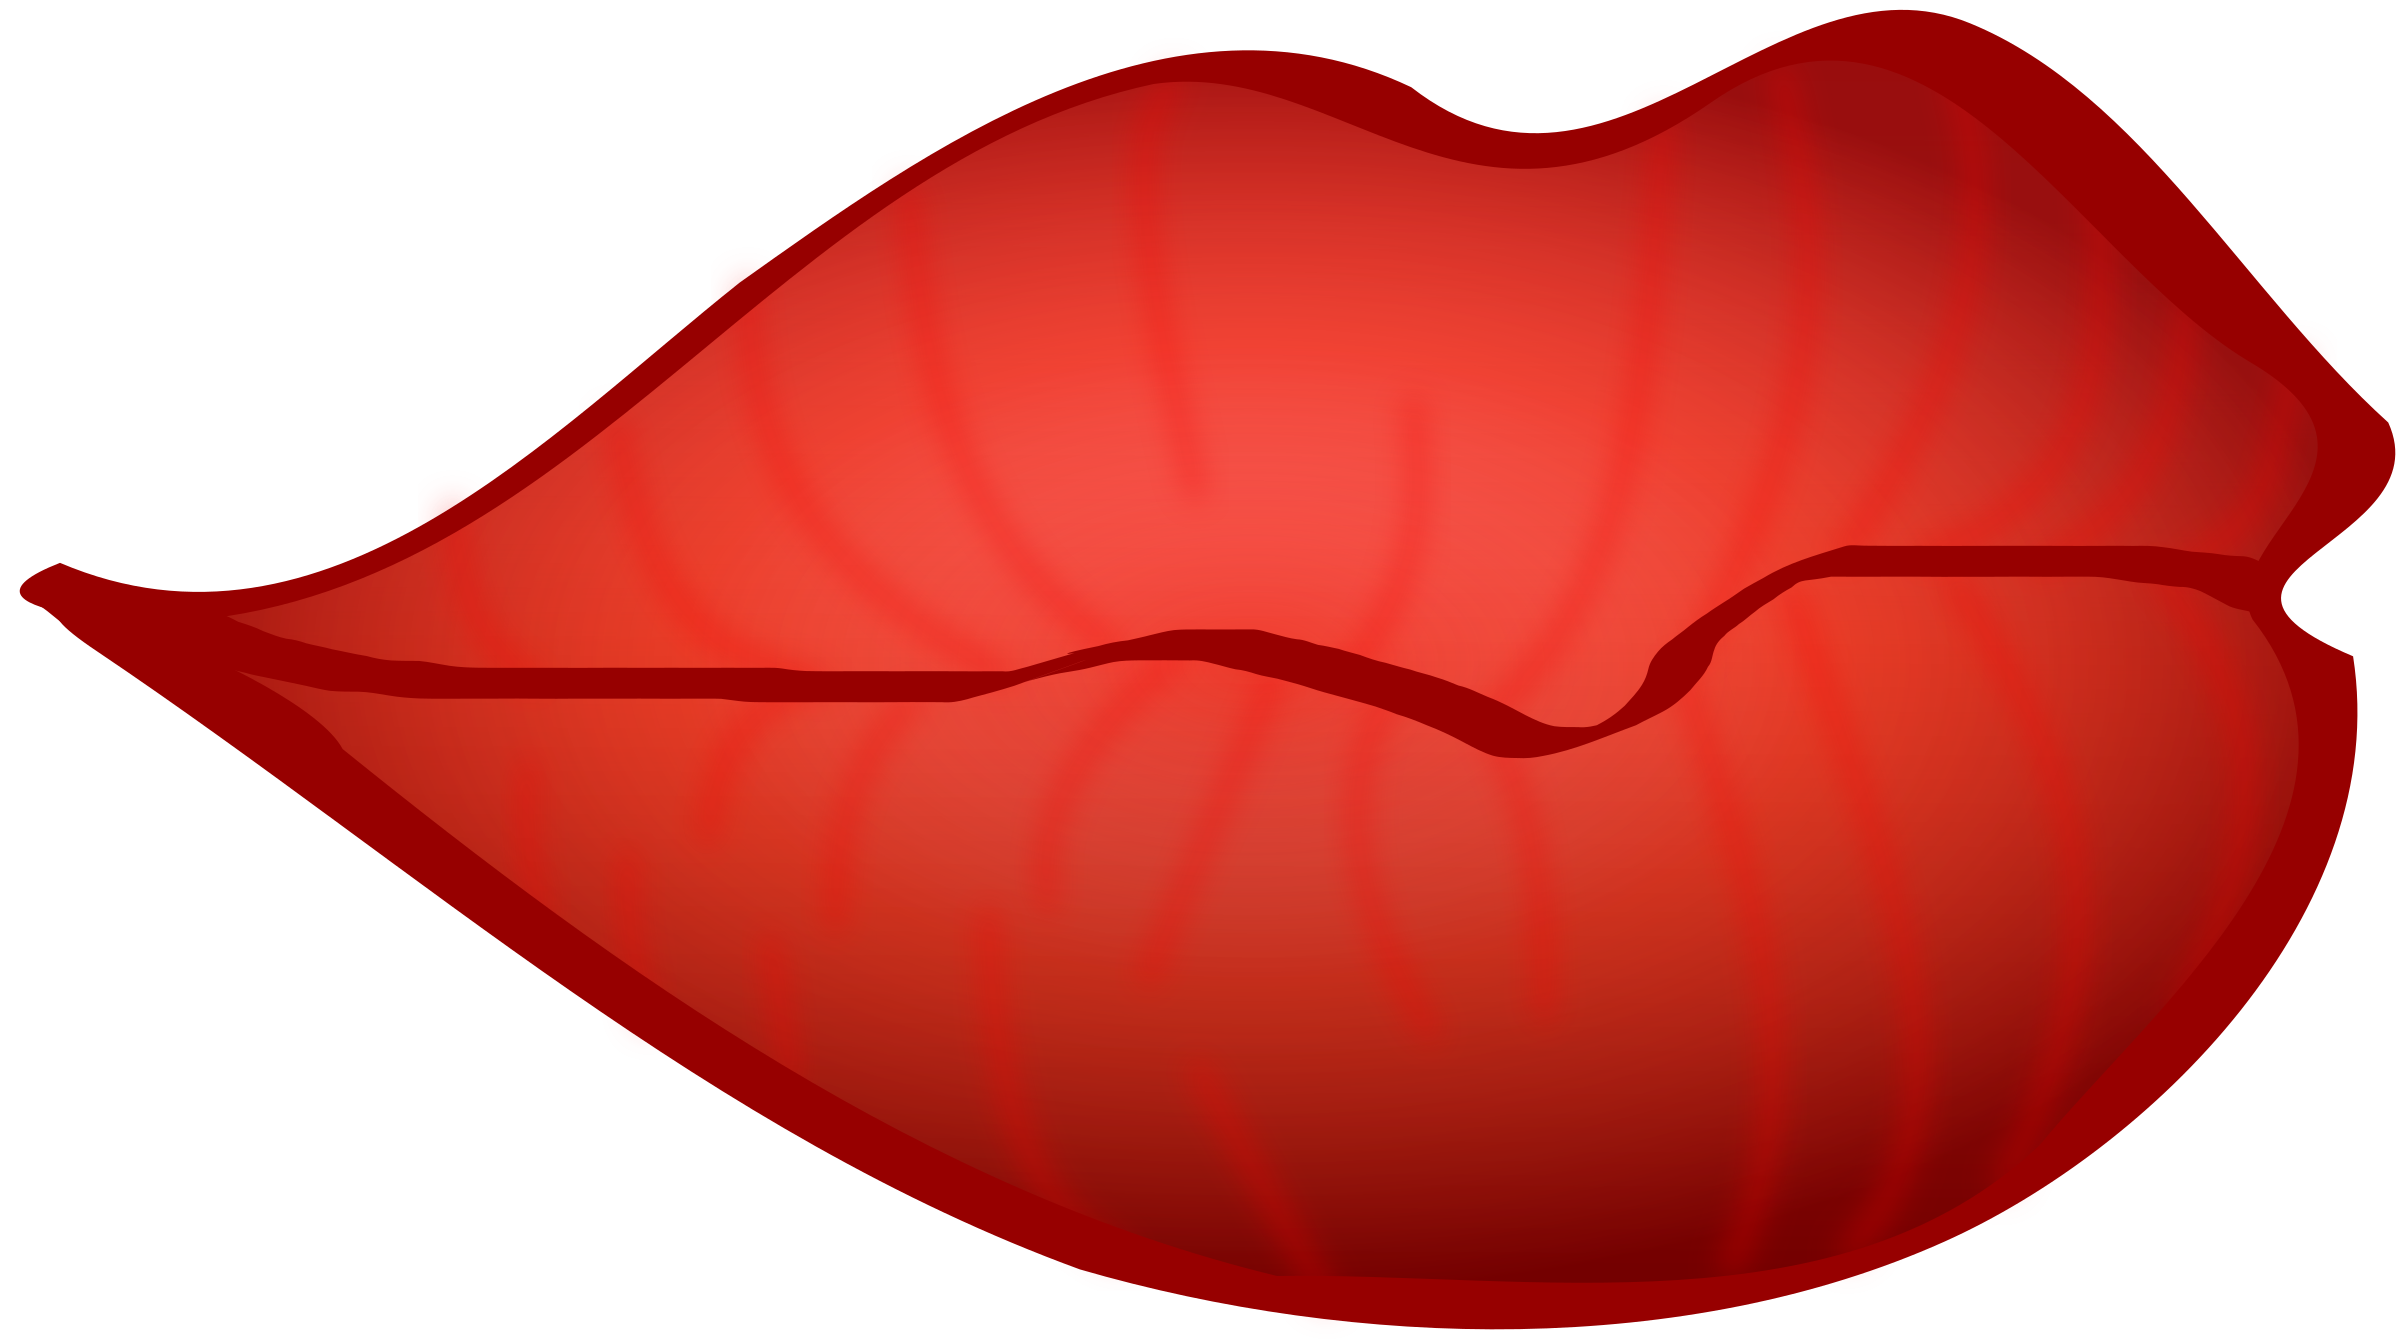 clipart of lips - photo #43